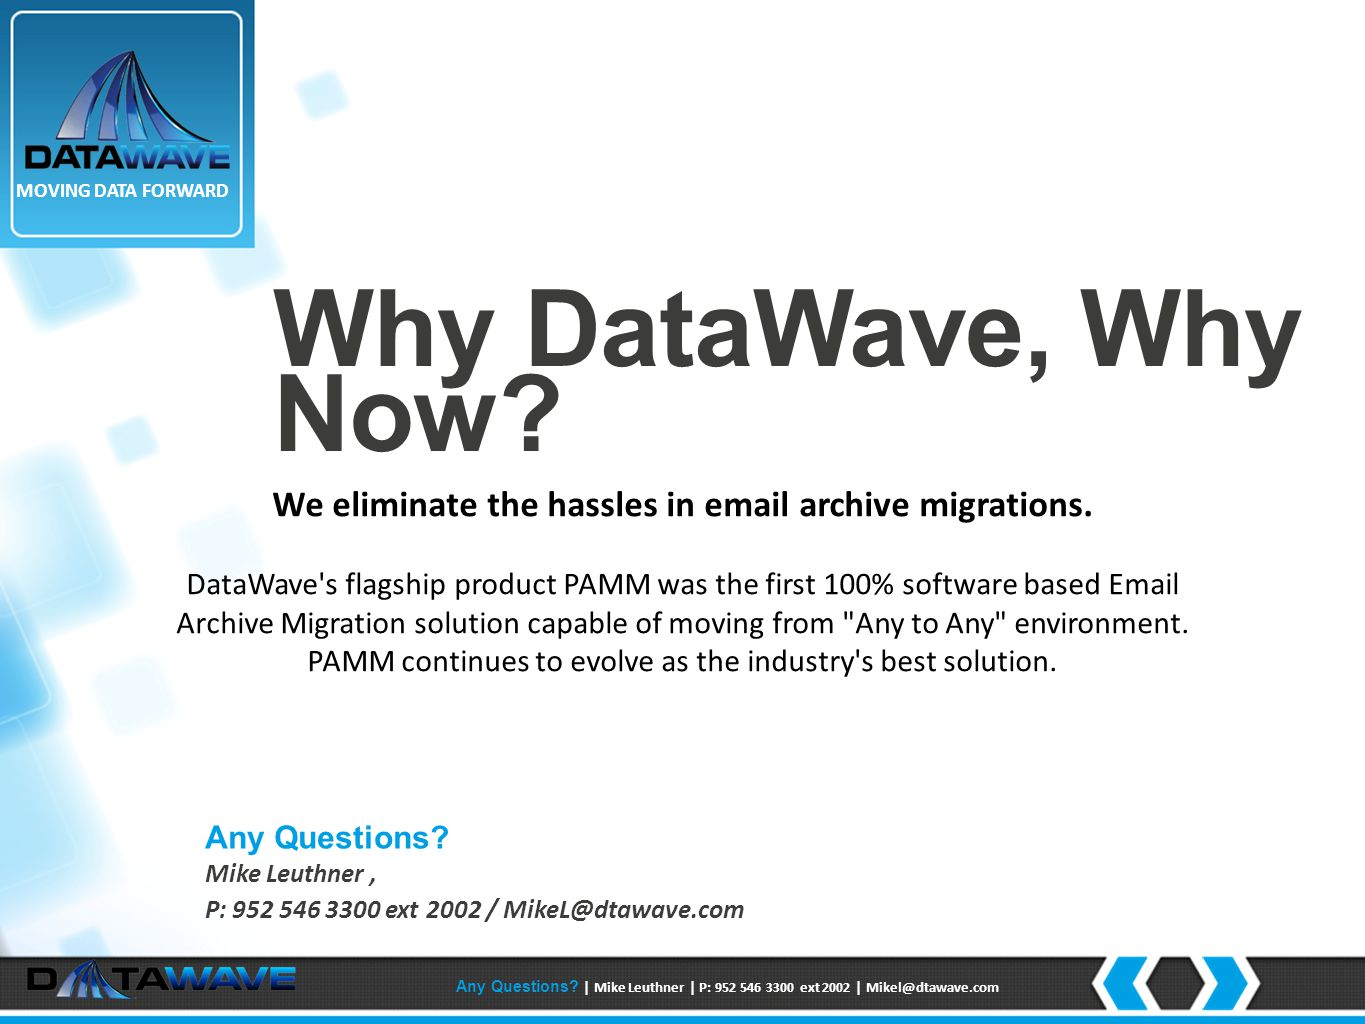 DataWave Manages Your Risk DataWave provides risk assurance through automated processes that are fully reported Proving chain of custody is important to your organization.